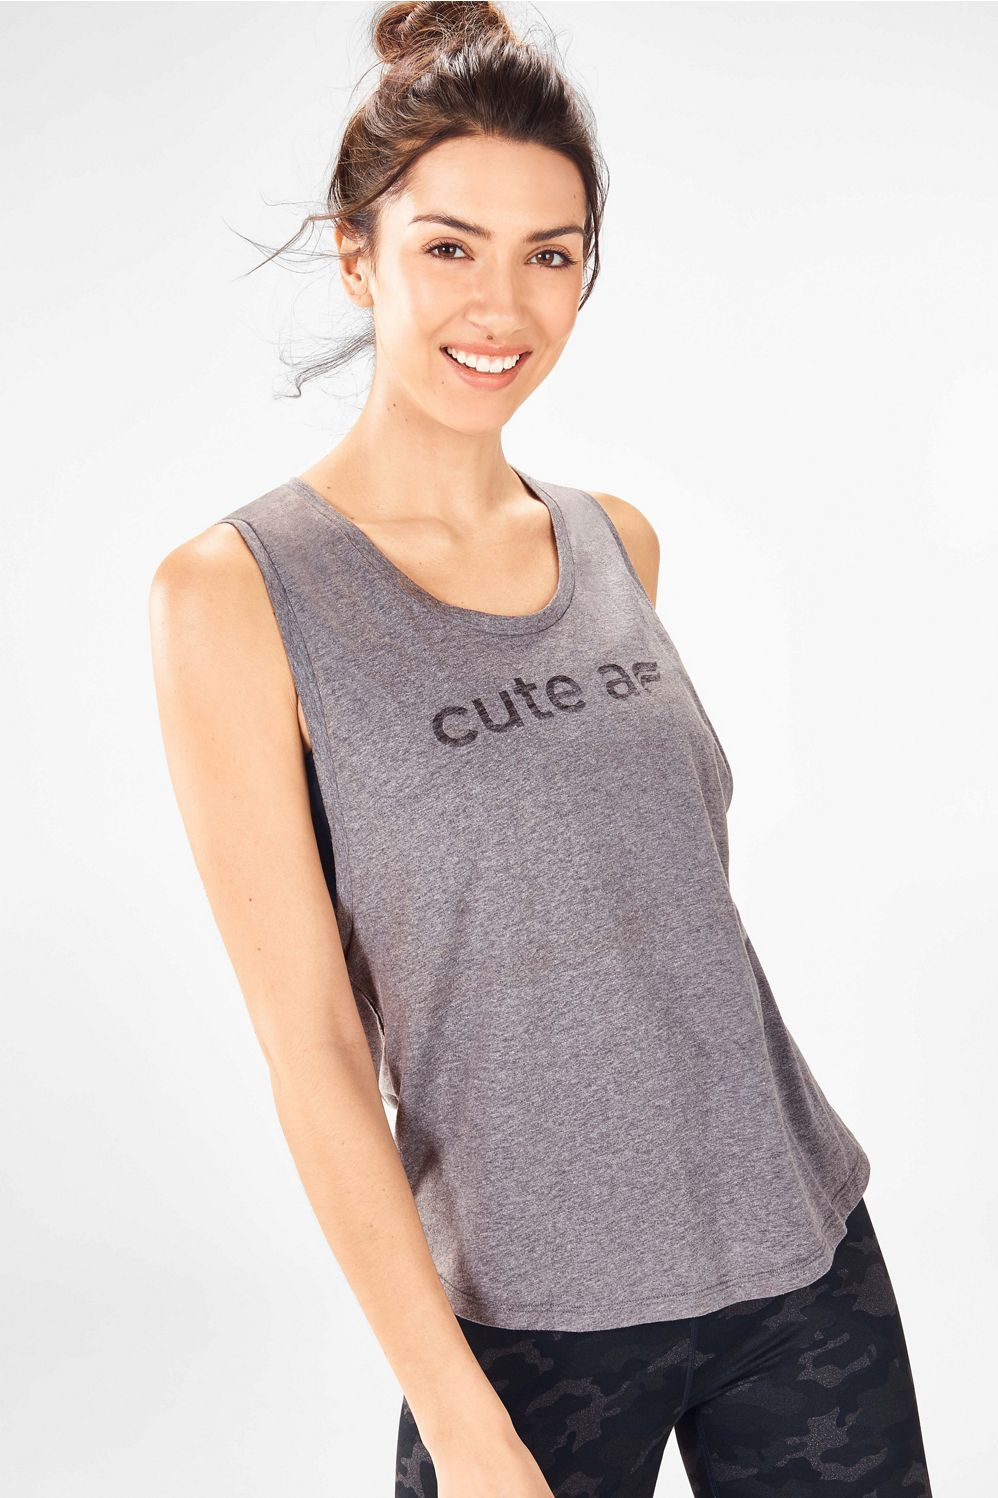 df0ad0267 Janis Graphic Muscle Tank - grey heather/cute af